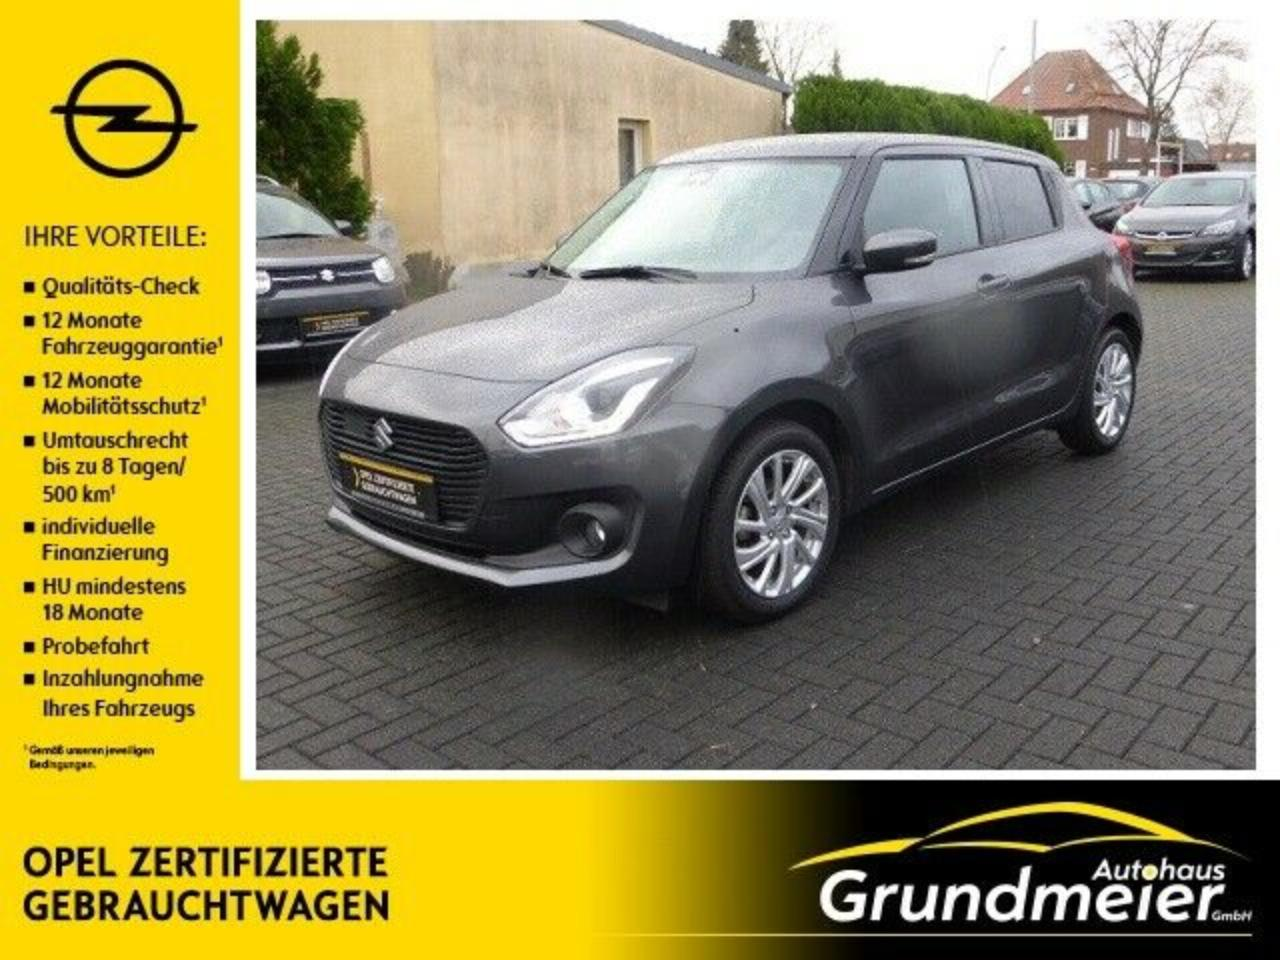 Suzuki Swift 1.0 Booster/Comfort+/Hybrid